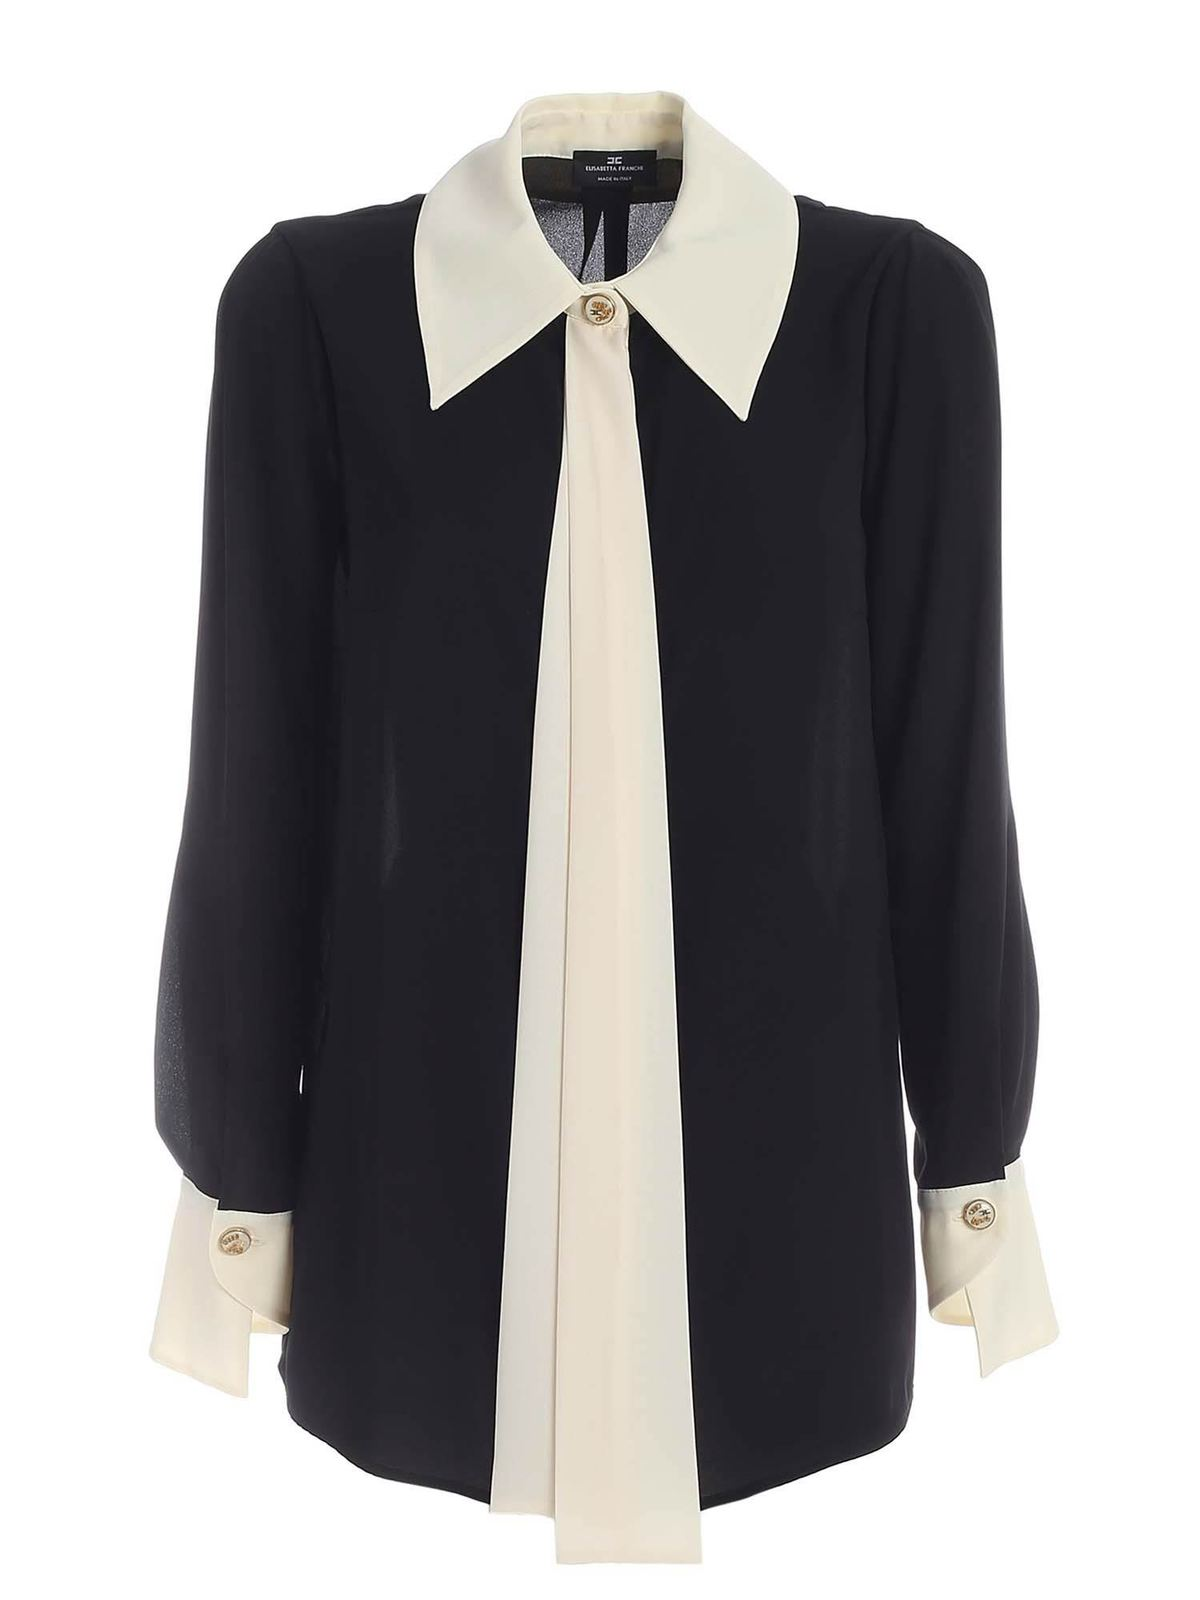 Elisabetta Franchi BLACK AND WHITE SHIRT SHIRT FEATURING FRONT R